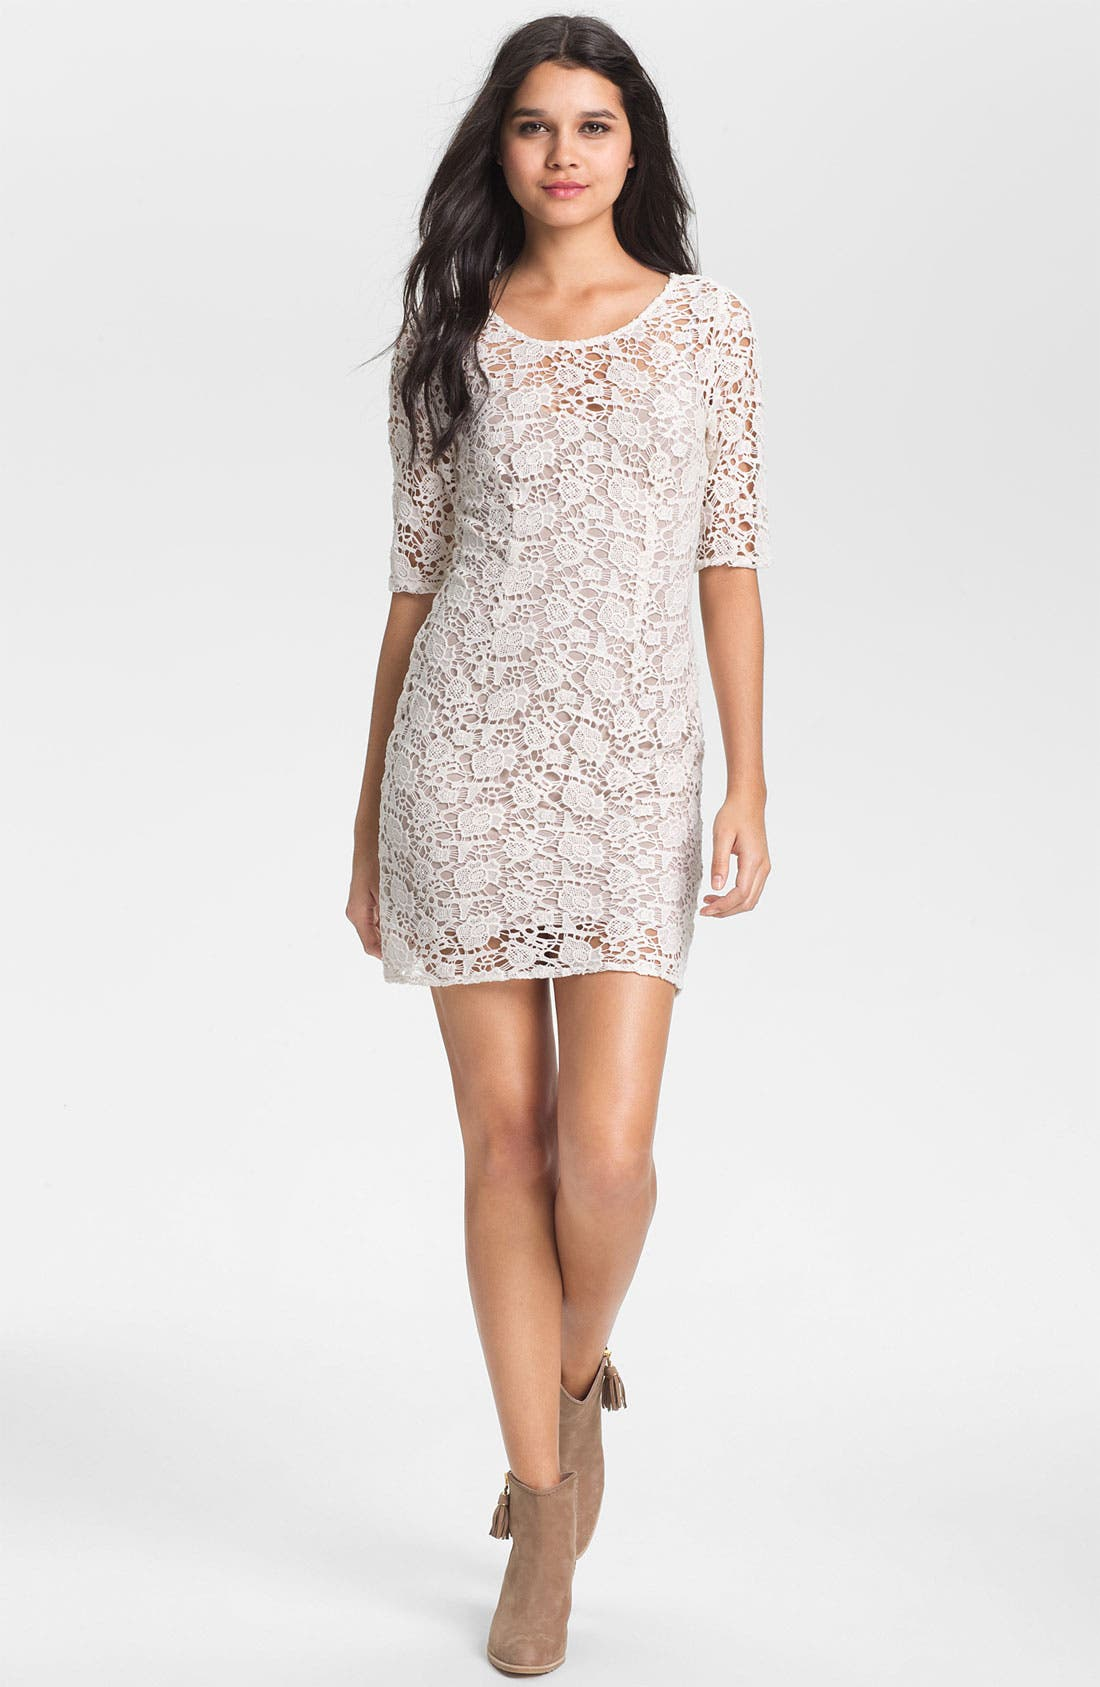 Main Image - Lily Aldridge for Velvet by Graham & Spencer Crochet Lace Dress